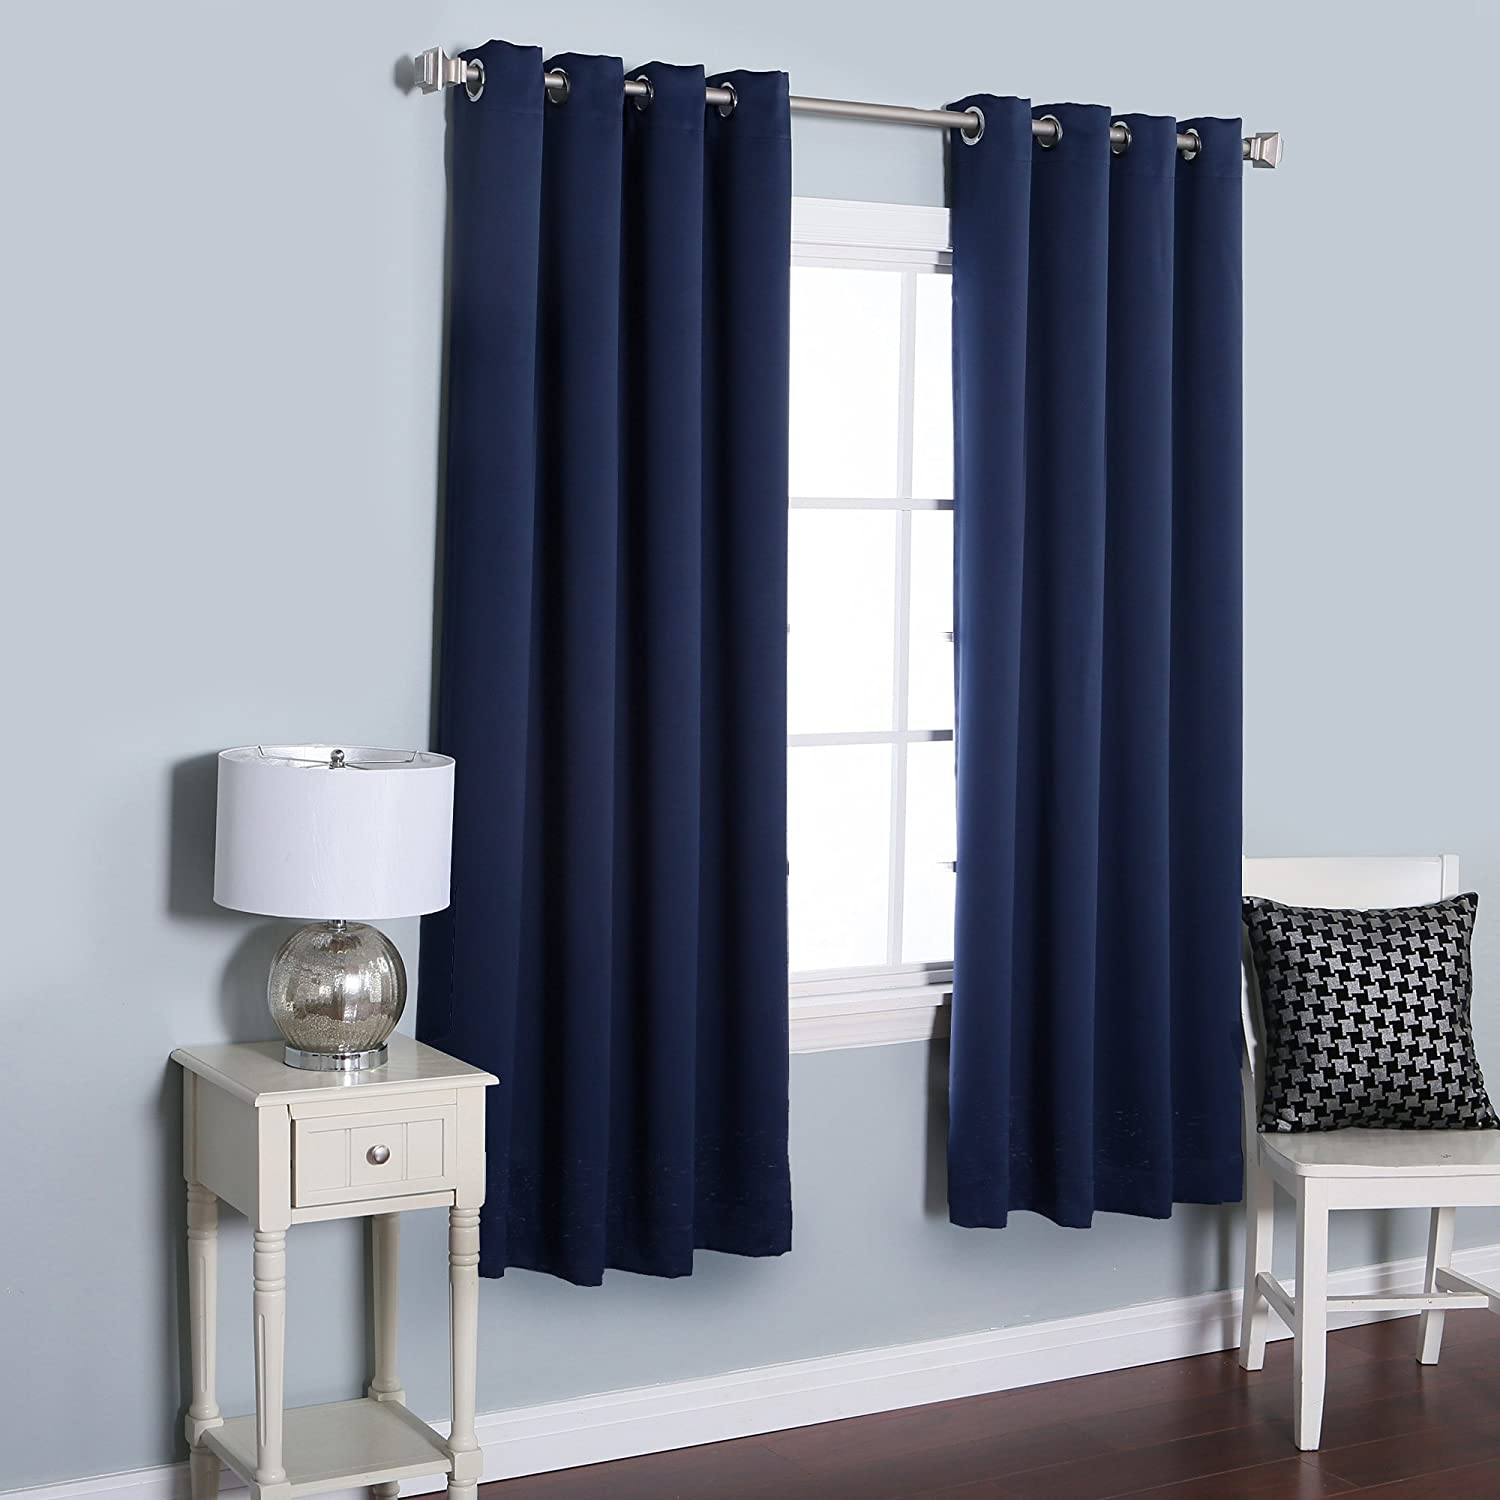 Best Home Fashion Thermal Insulated Blackout Curtains - Stainless Steel Nickel Grommet Top